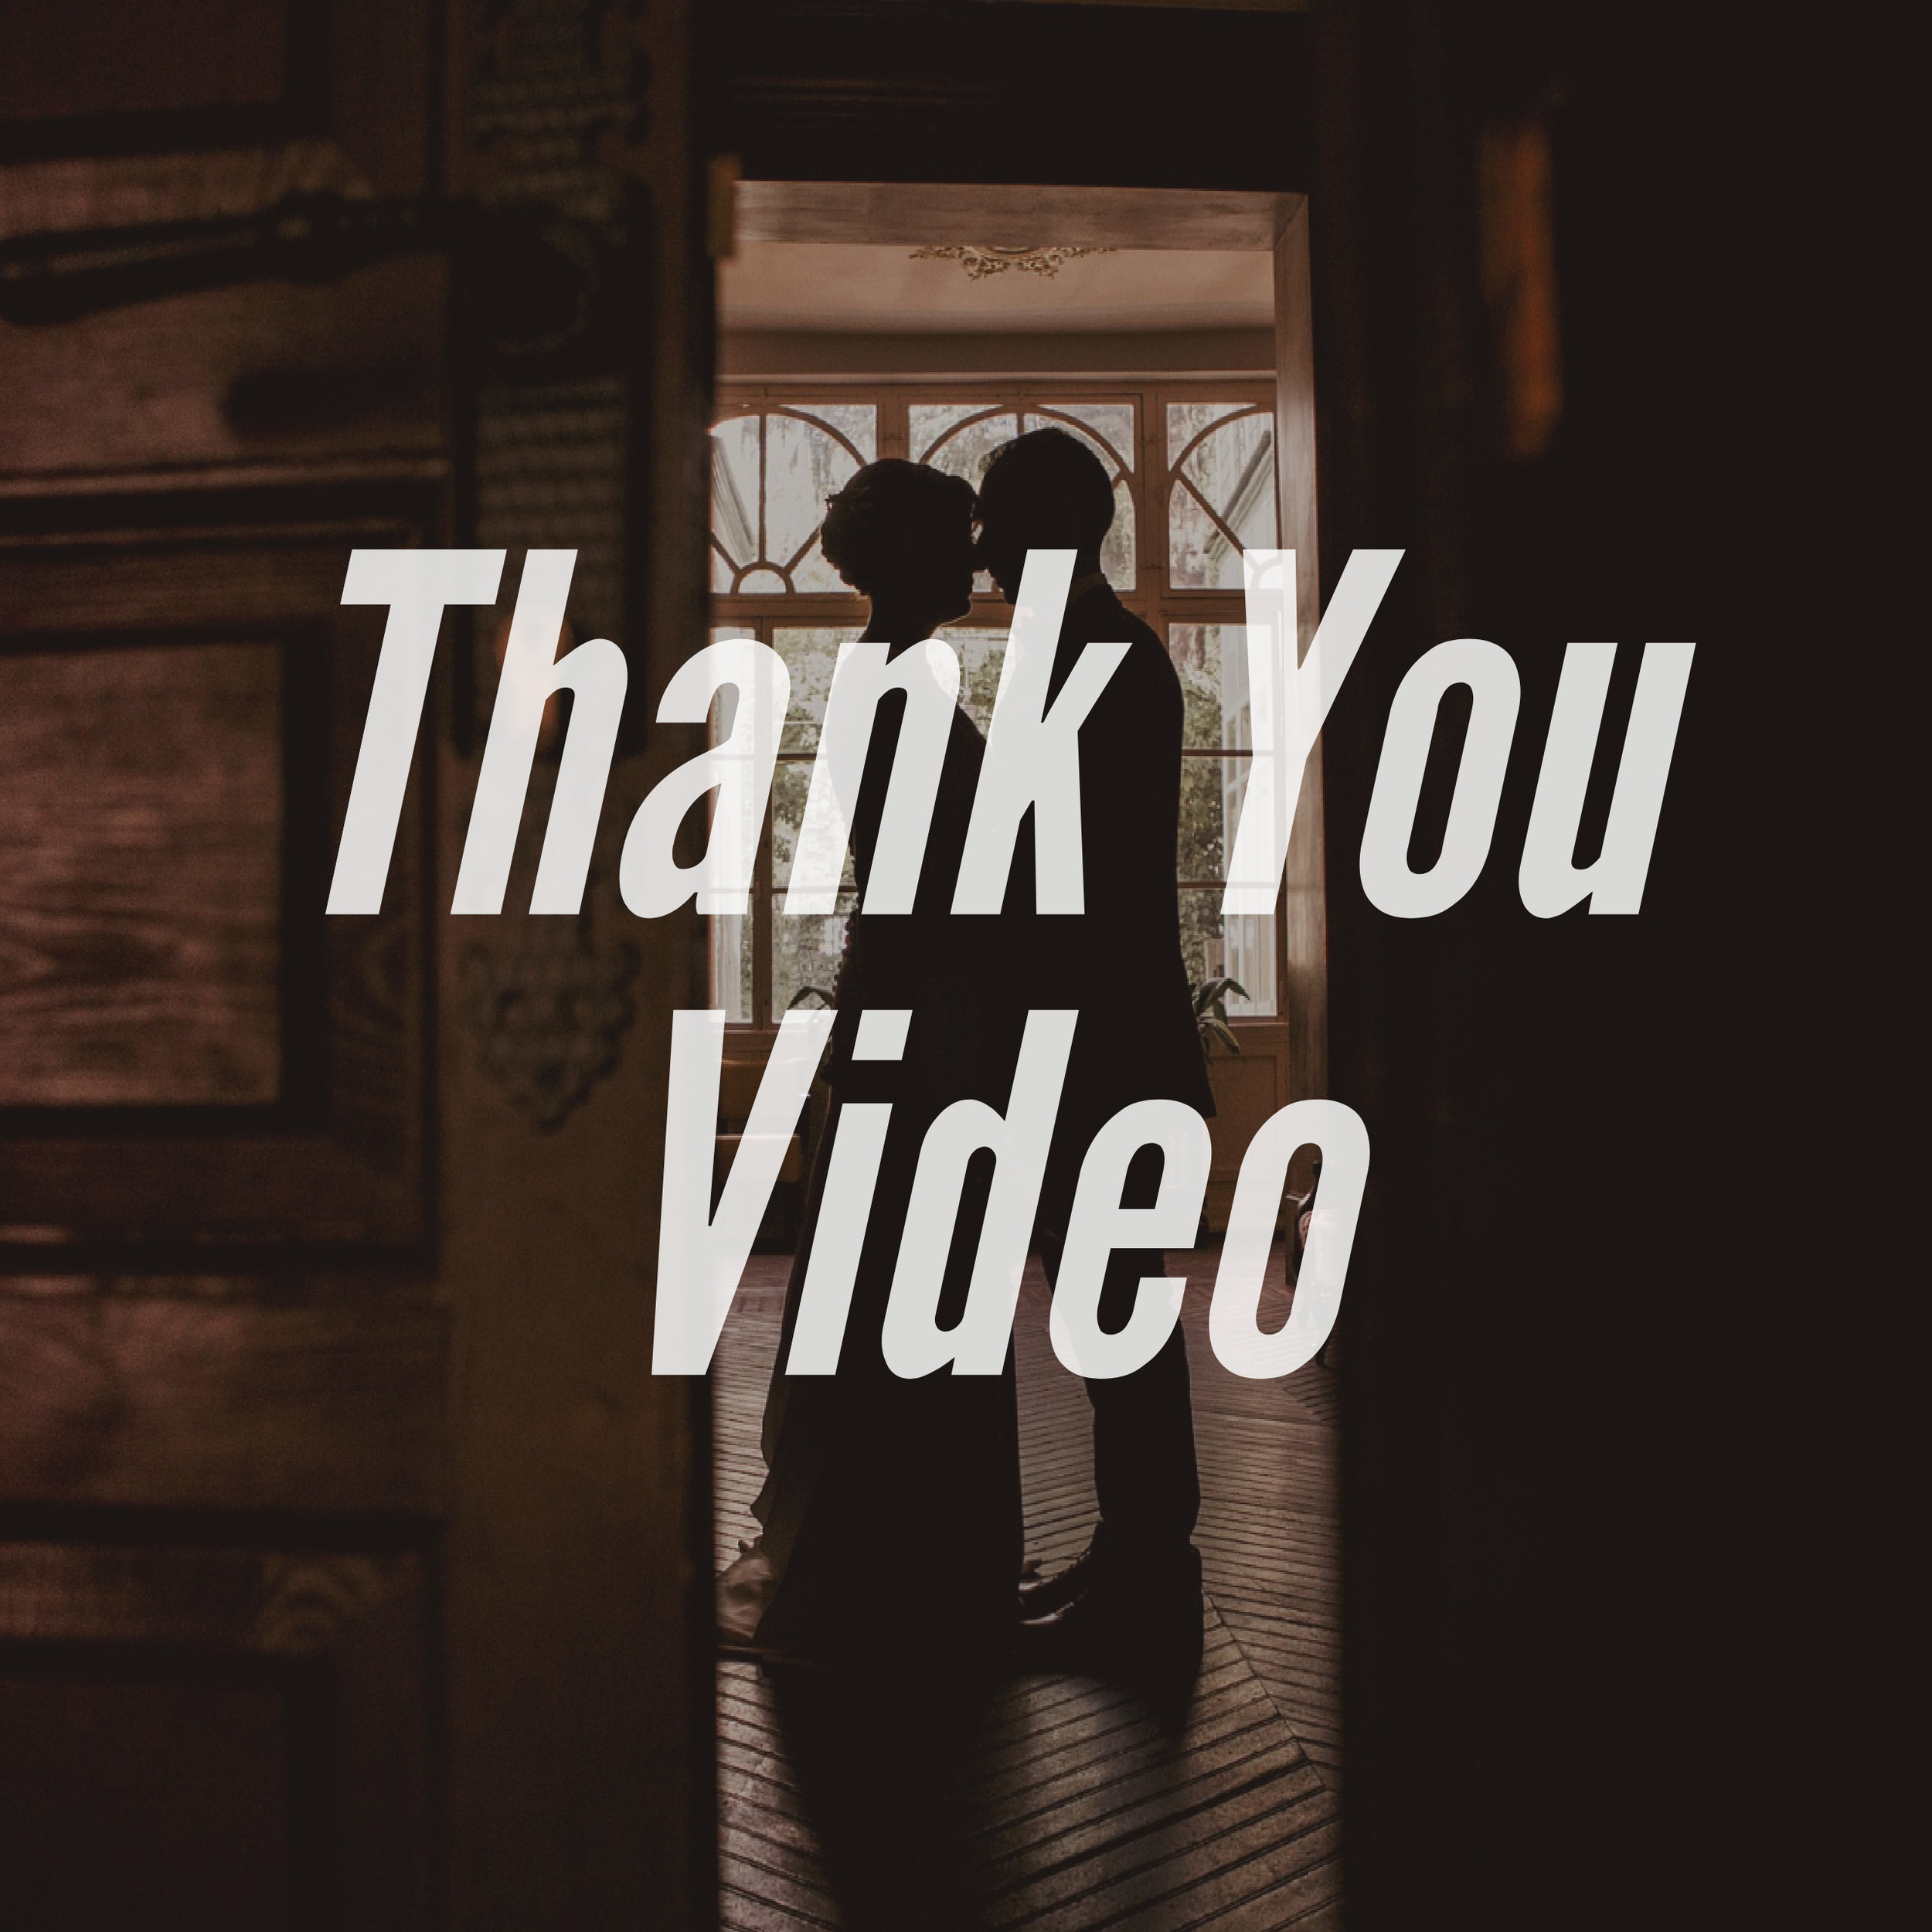 Add a beautiful thank you video that acts as a replacement or enhancement of your traditional efforts to thank your guests. This video can be put on flash drives to mail to your guests and will be posted online so you can share a link to your guests through email or social media.